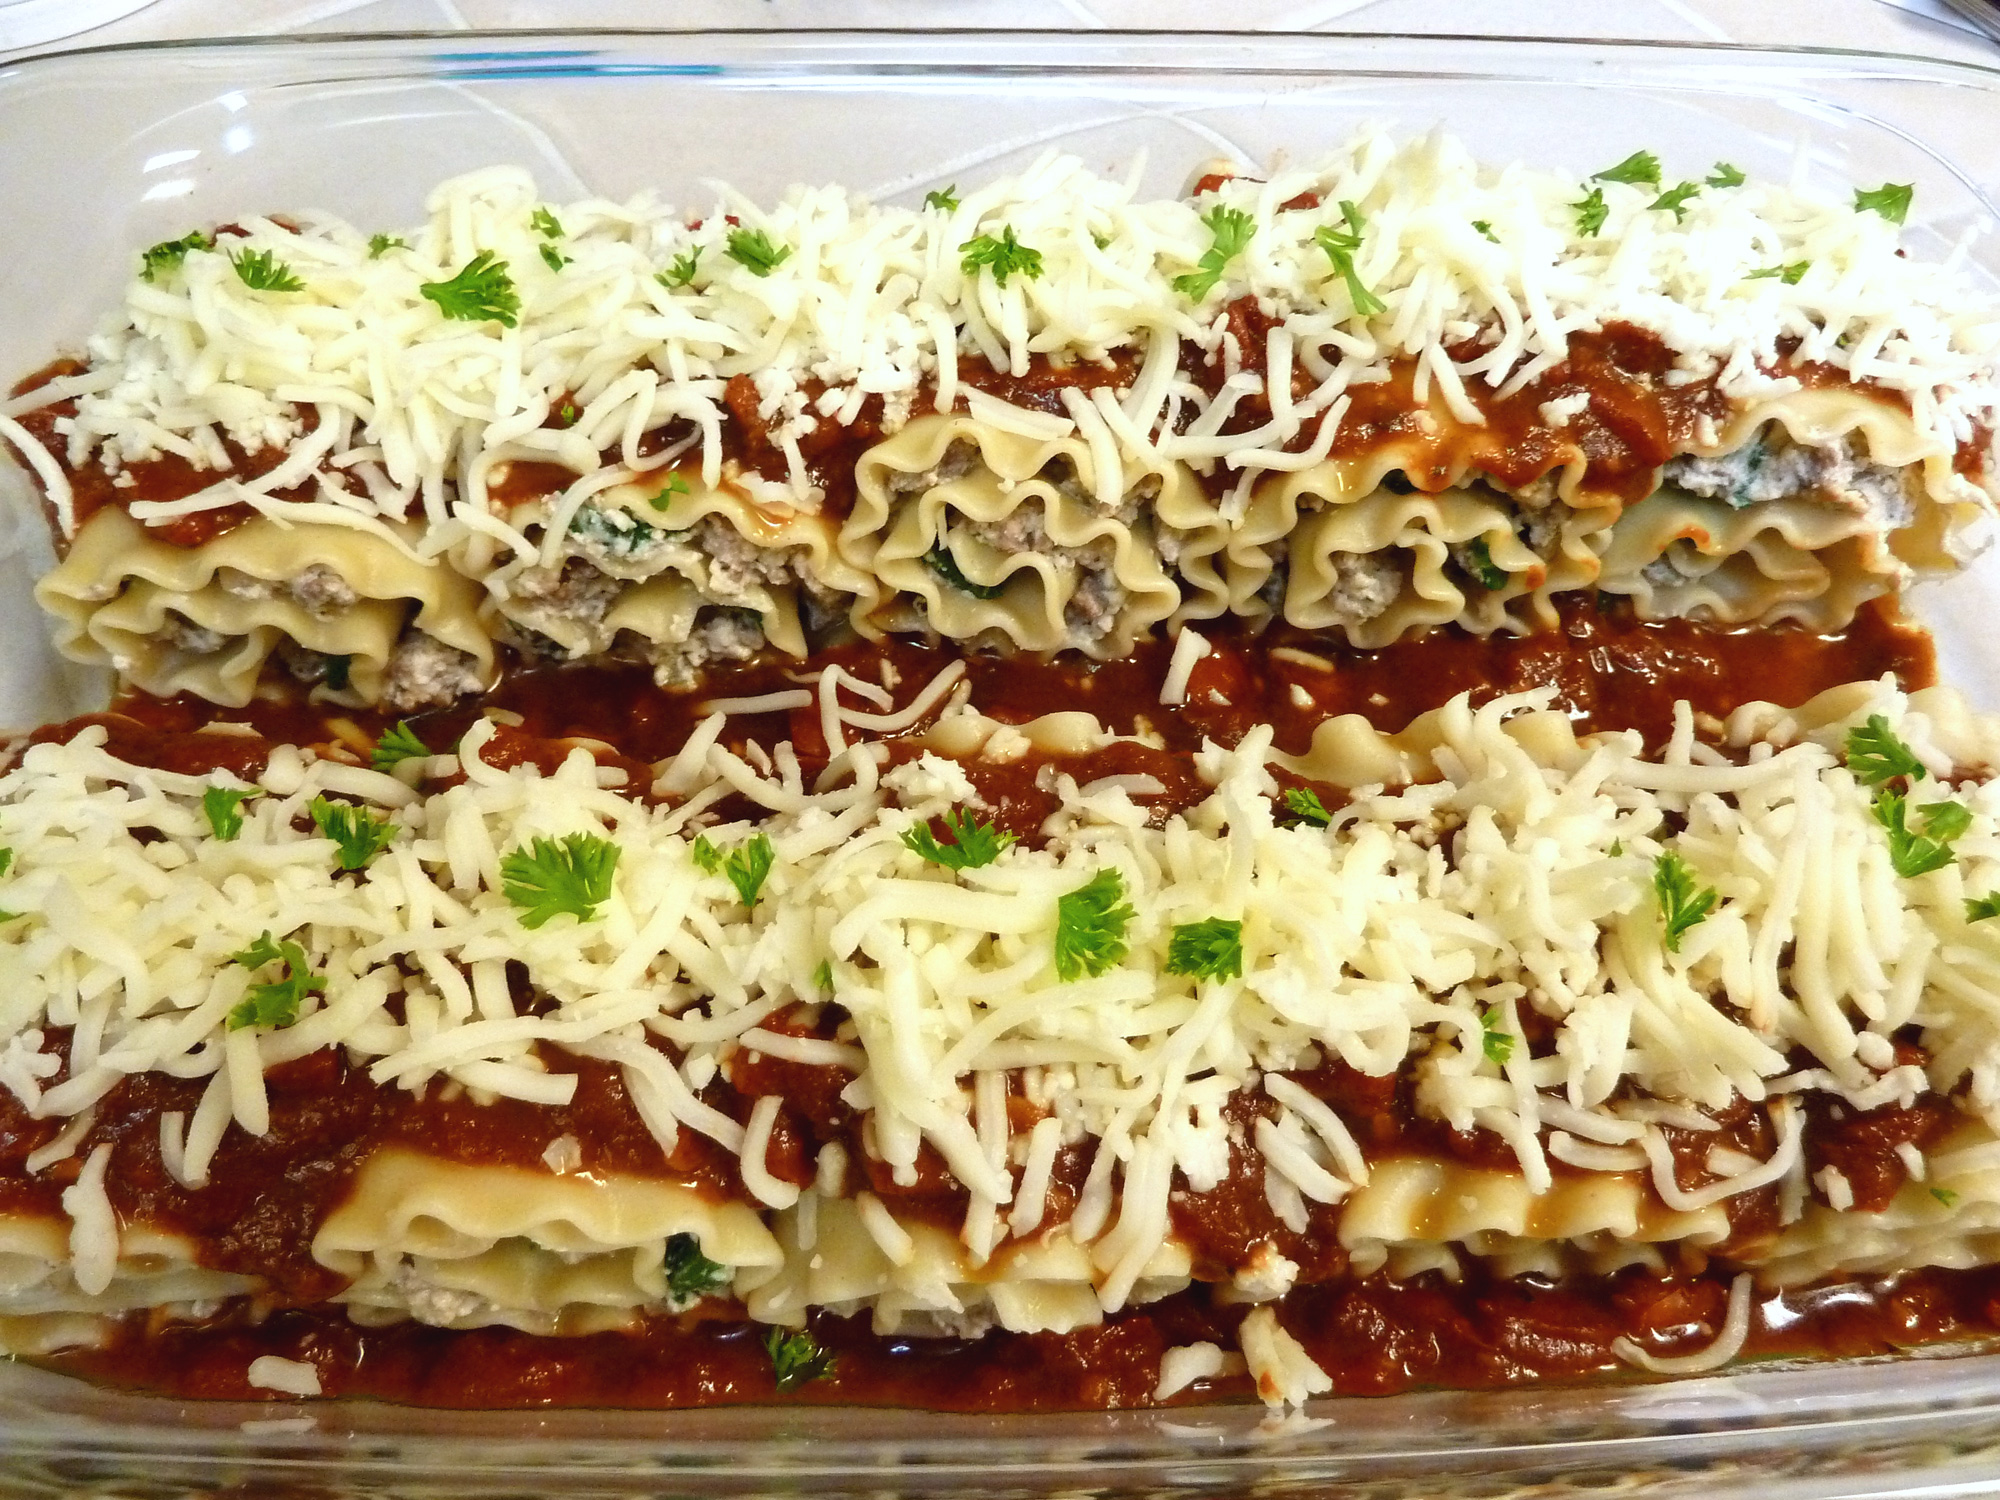 Finish by topping the lasagna rolls with shredded mozzarella cheese.